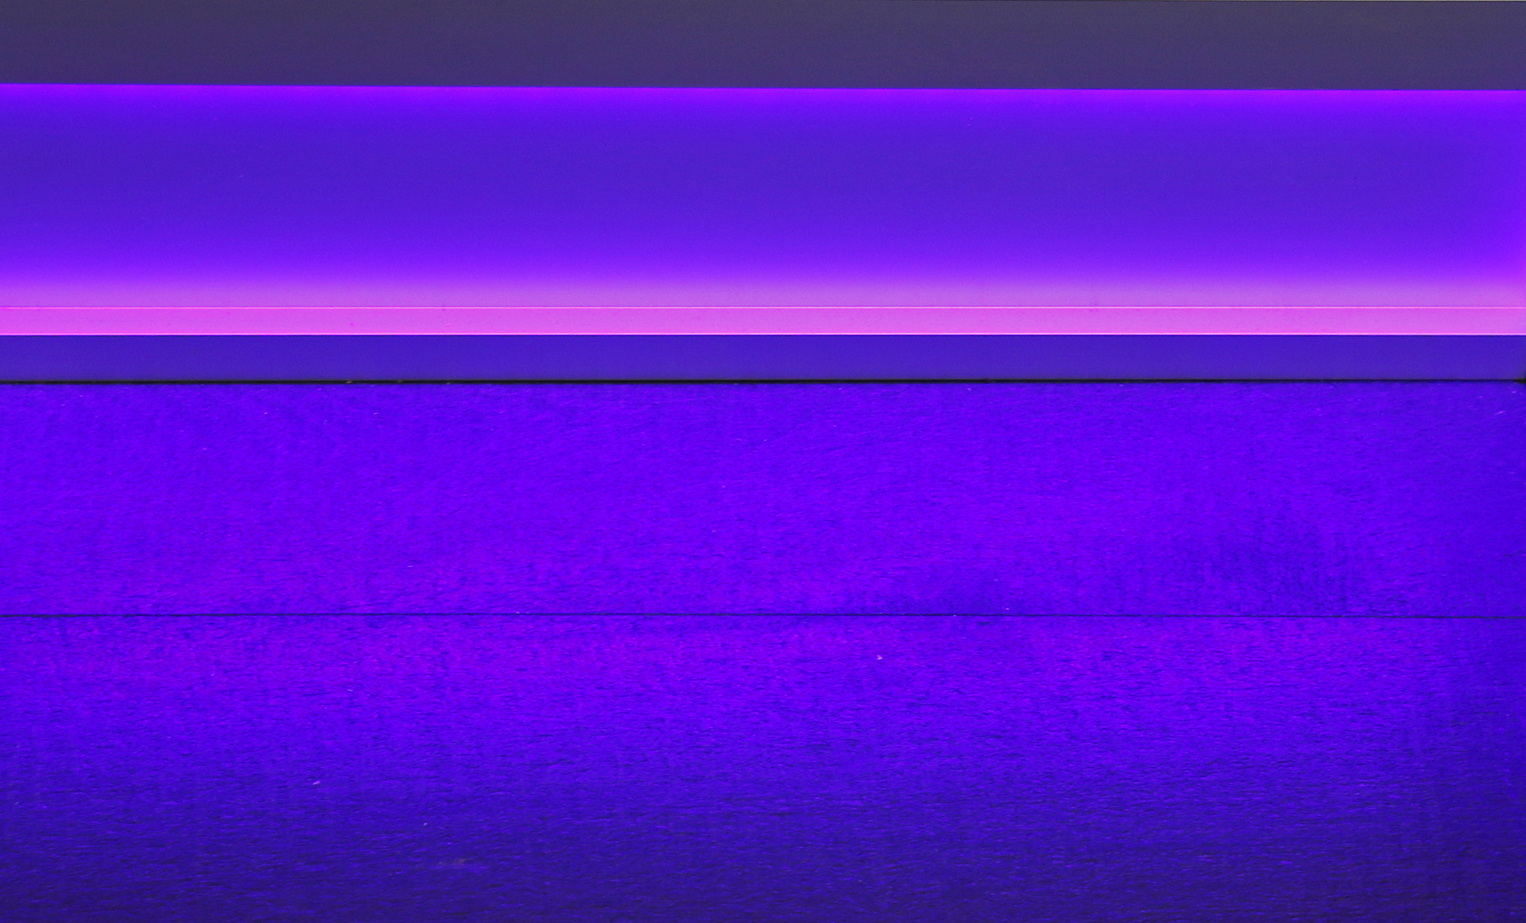 neon-purple-and-pink-led-light-vinson-aluminum-baseboard-1